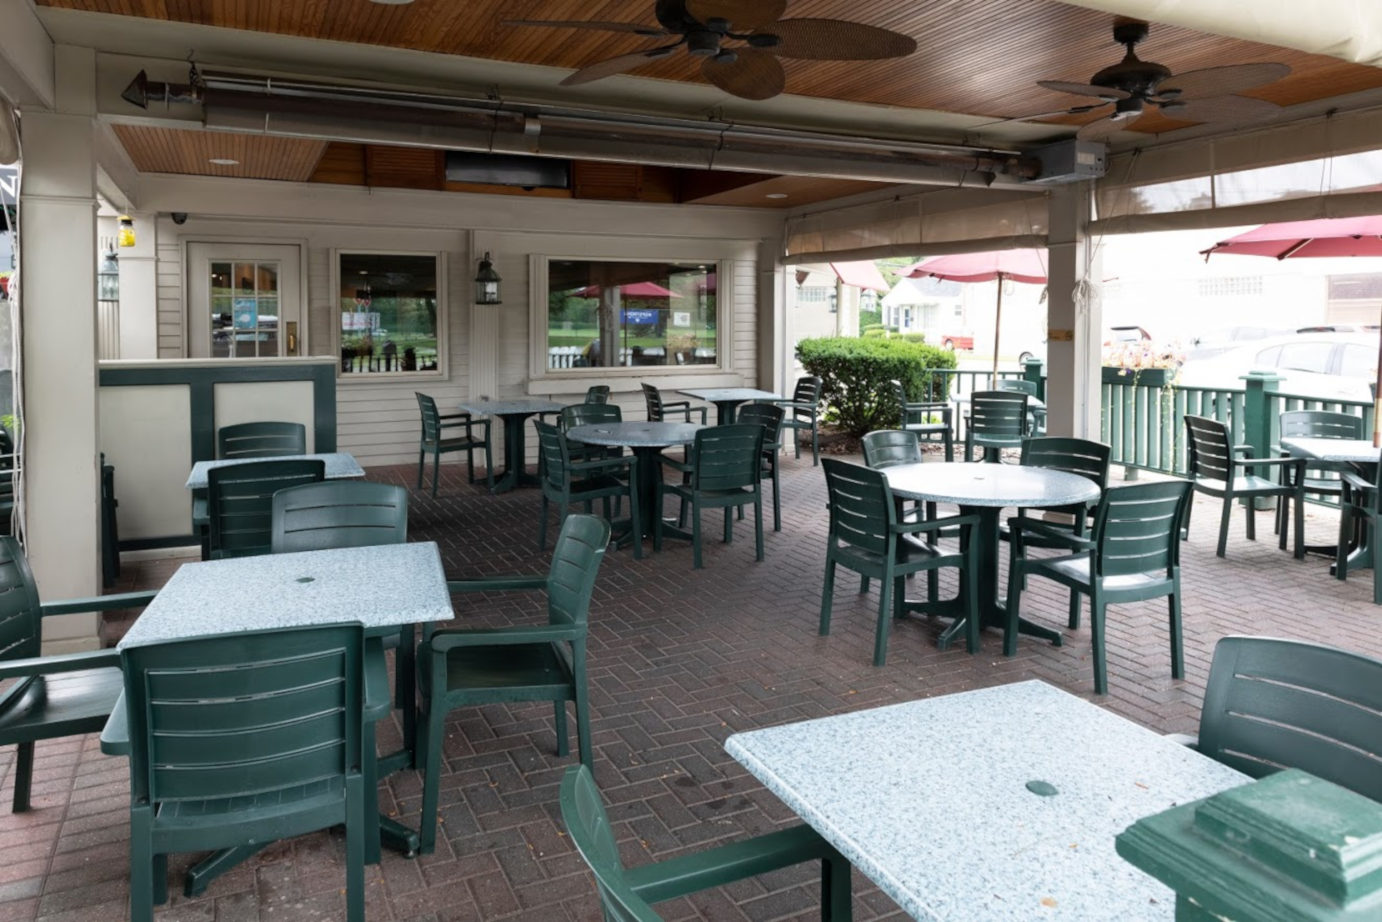 Exterior, tables ready for guests